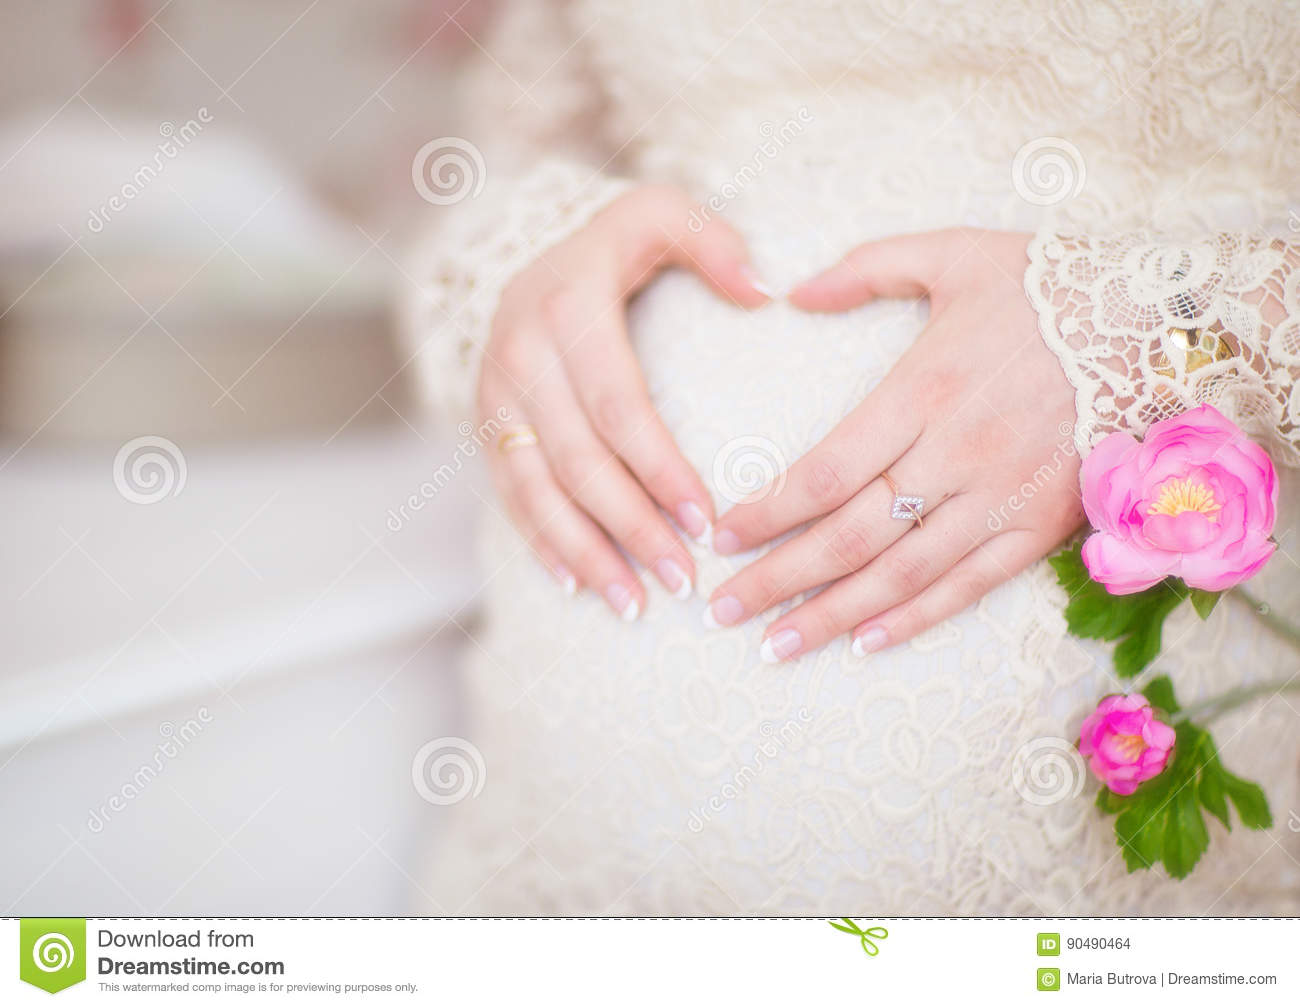 Pregnant Woman Holding Her Hands In A Heart Shape On Her Belly Stock ...